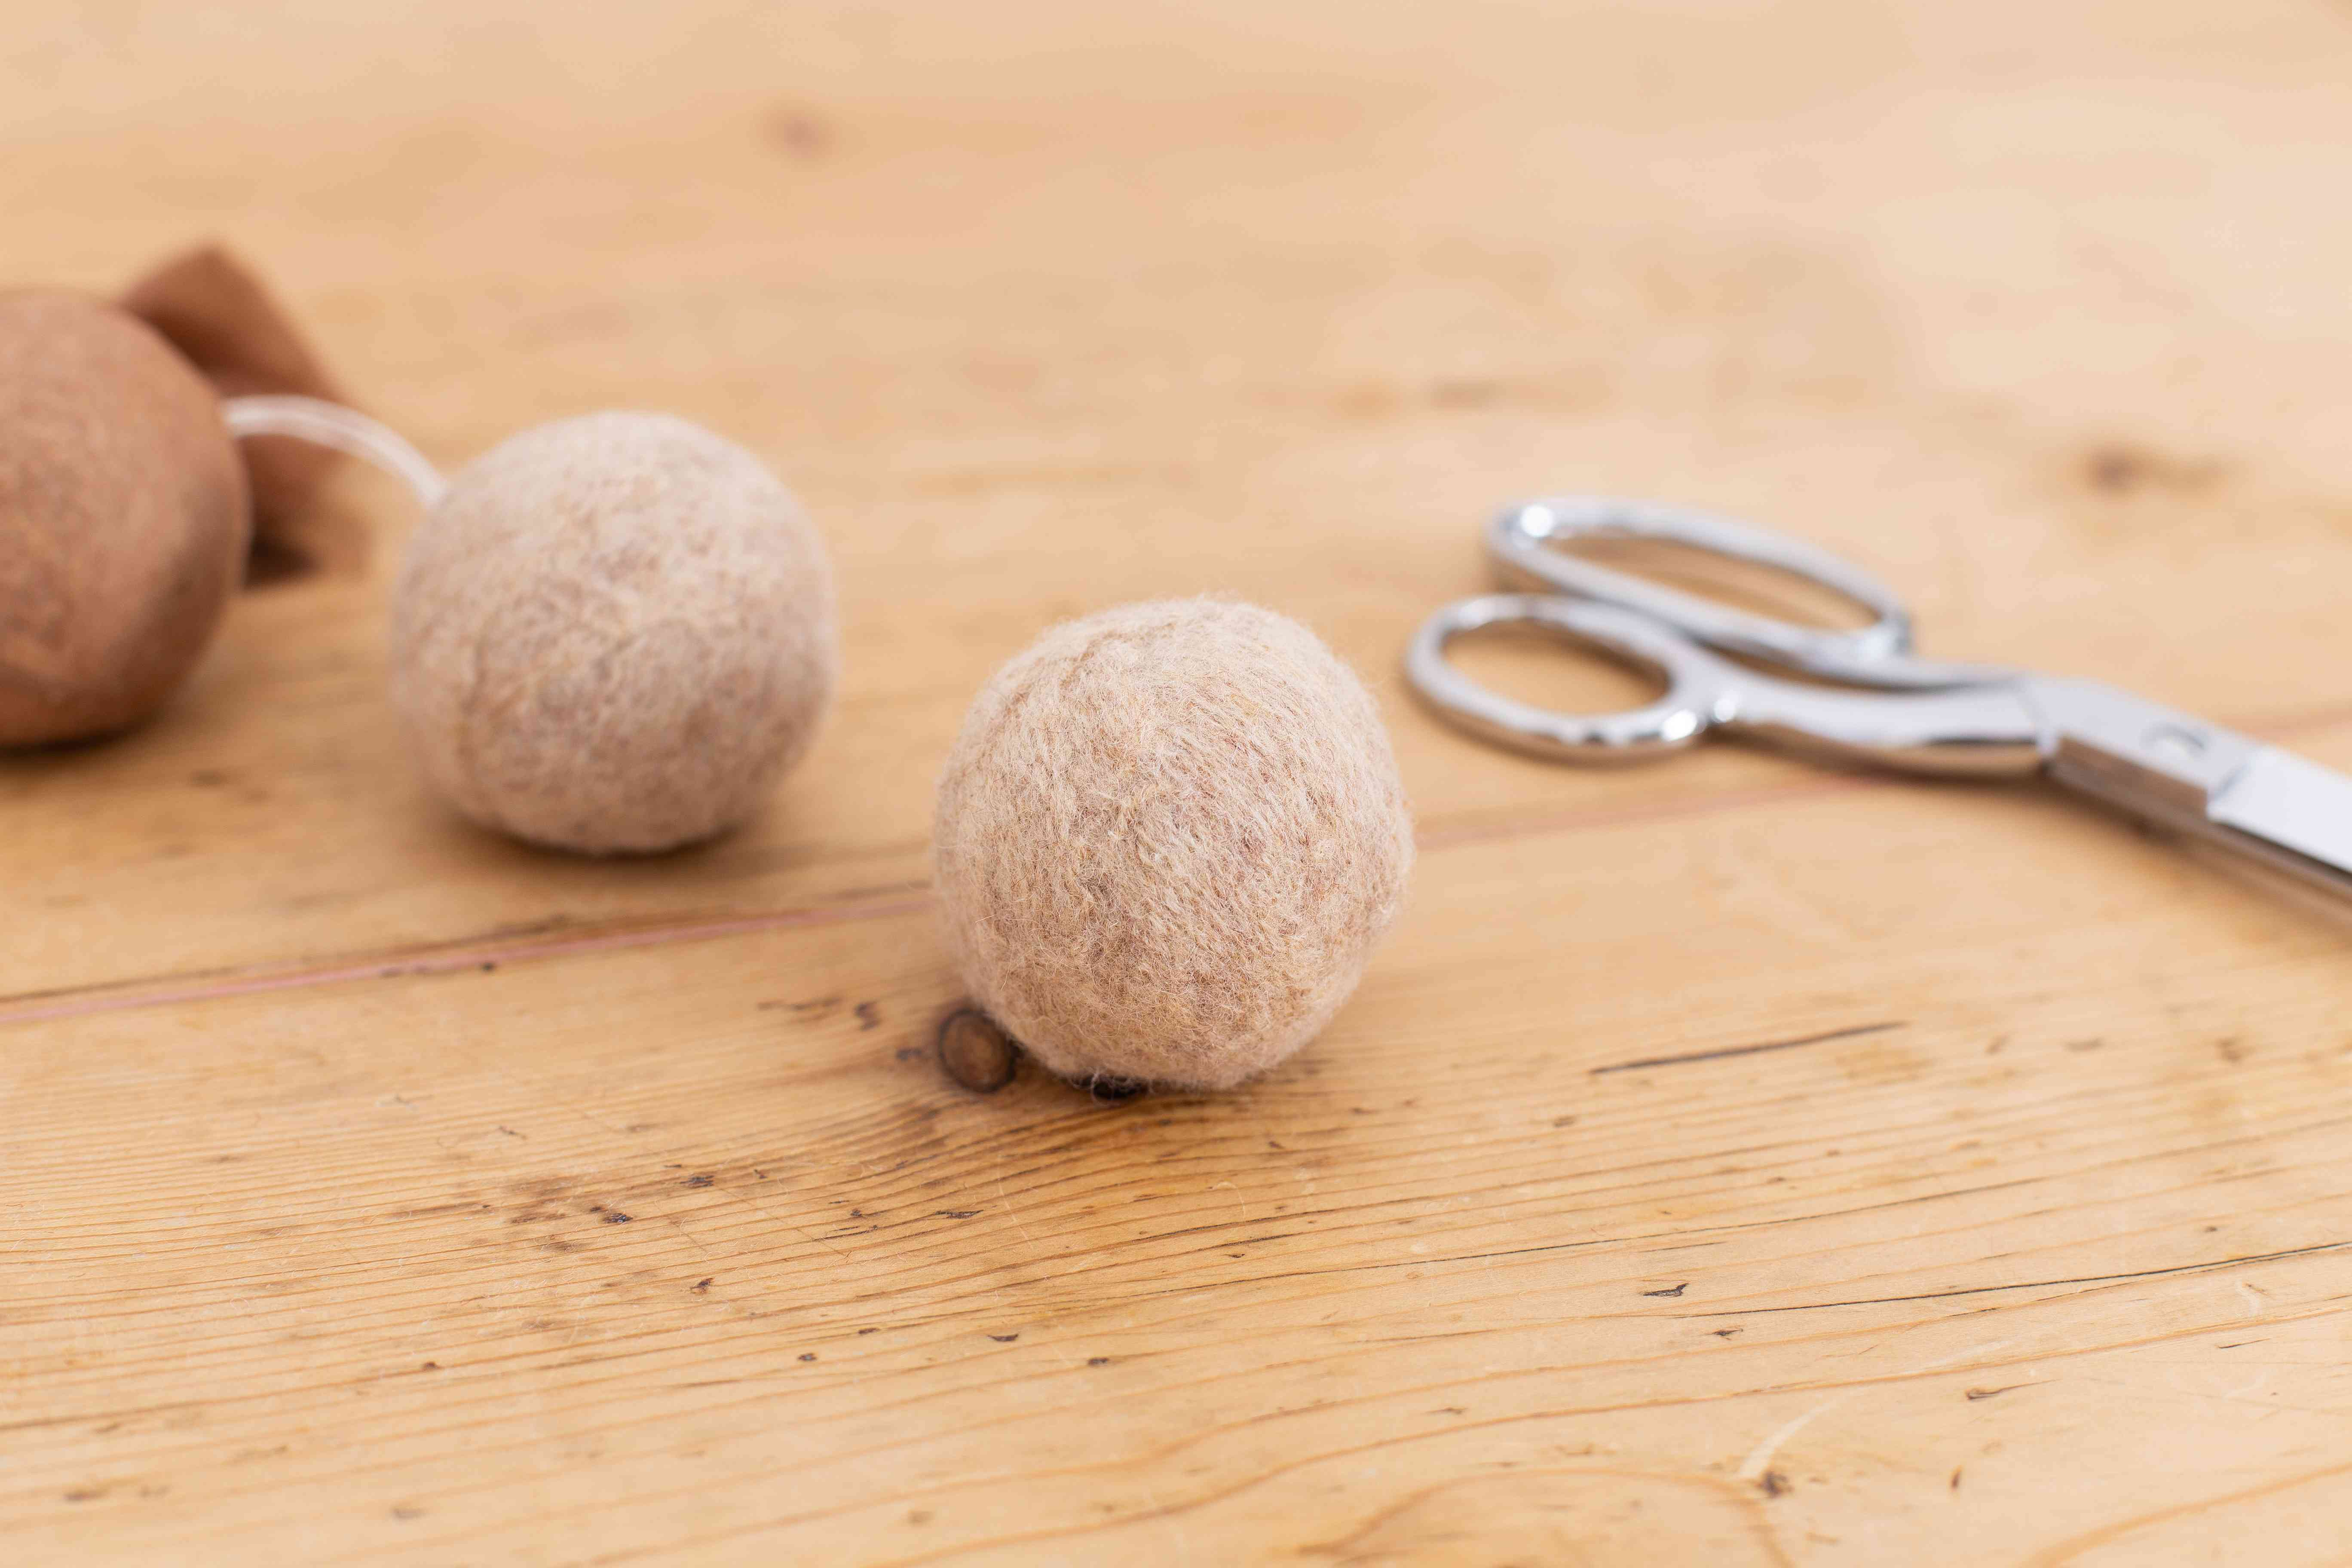 Dryer balls removed from pantyhose to dry core